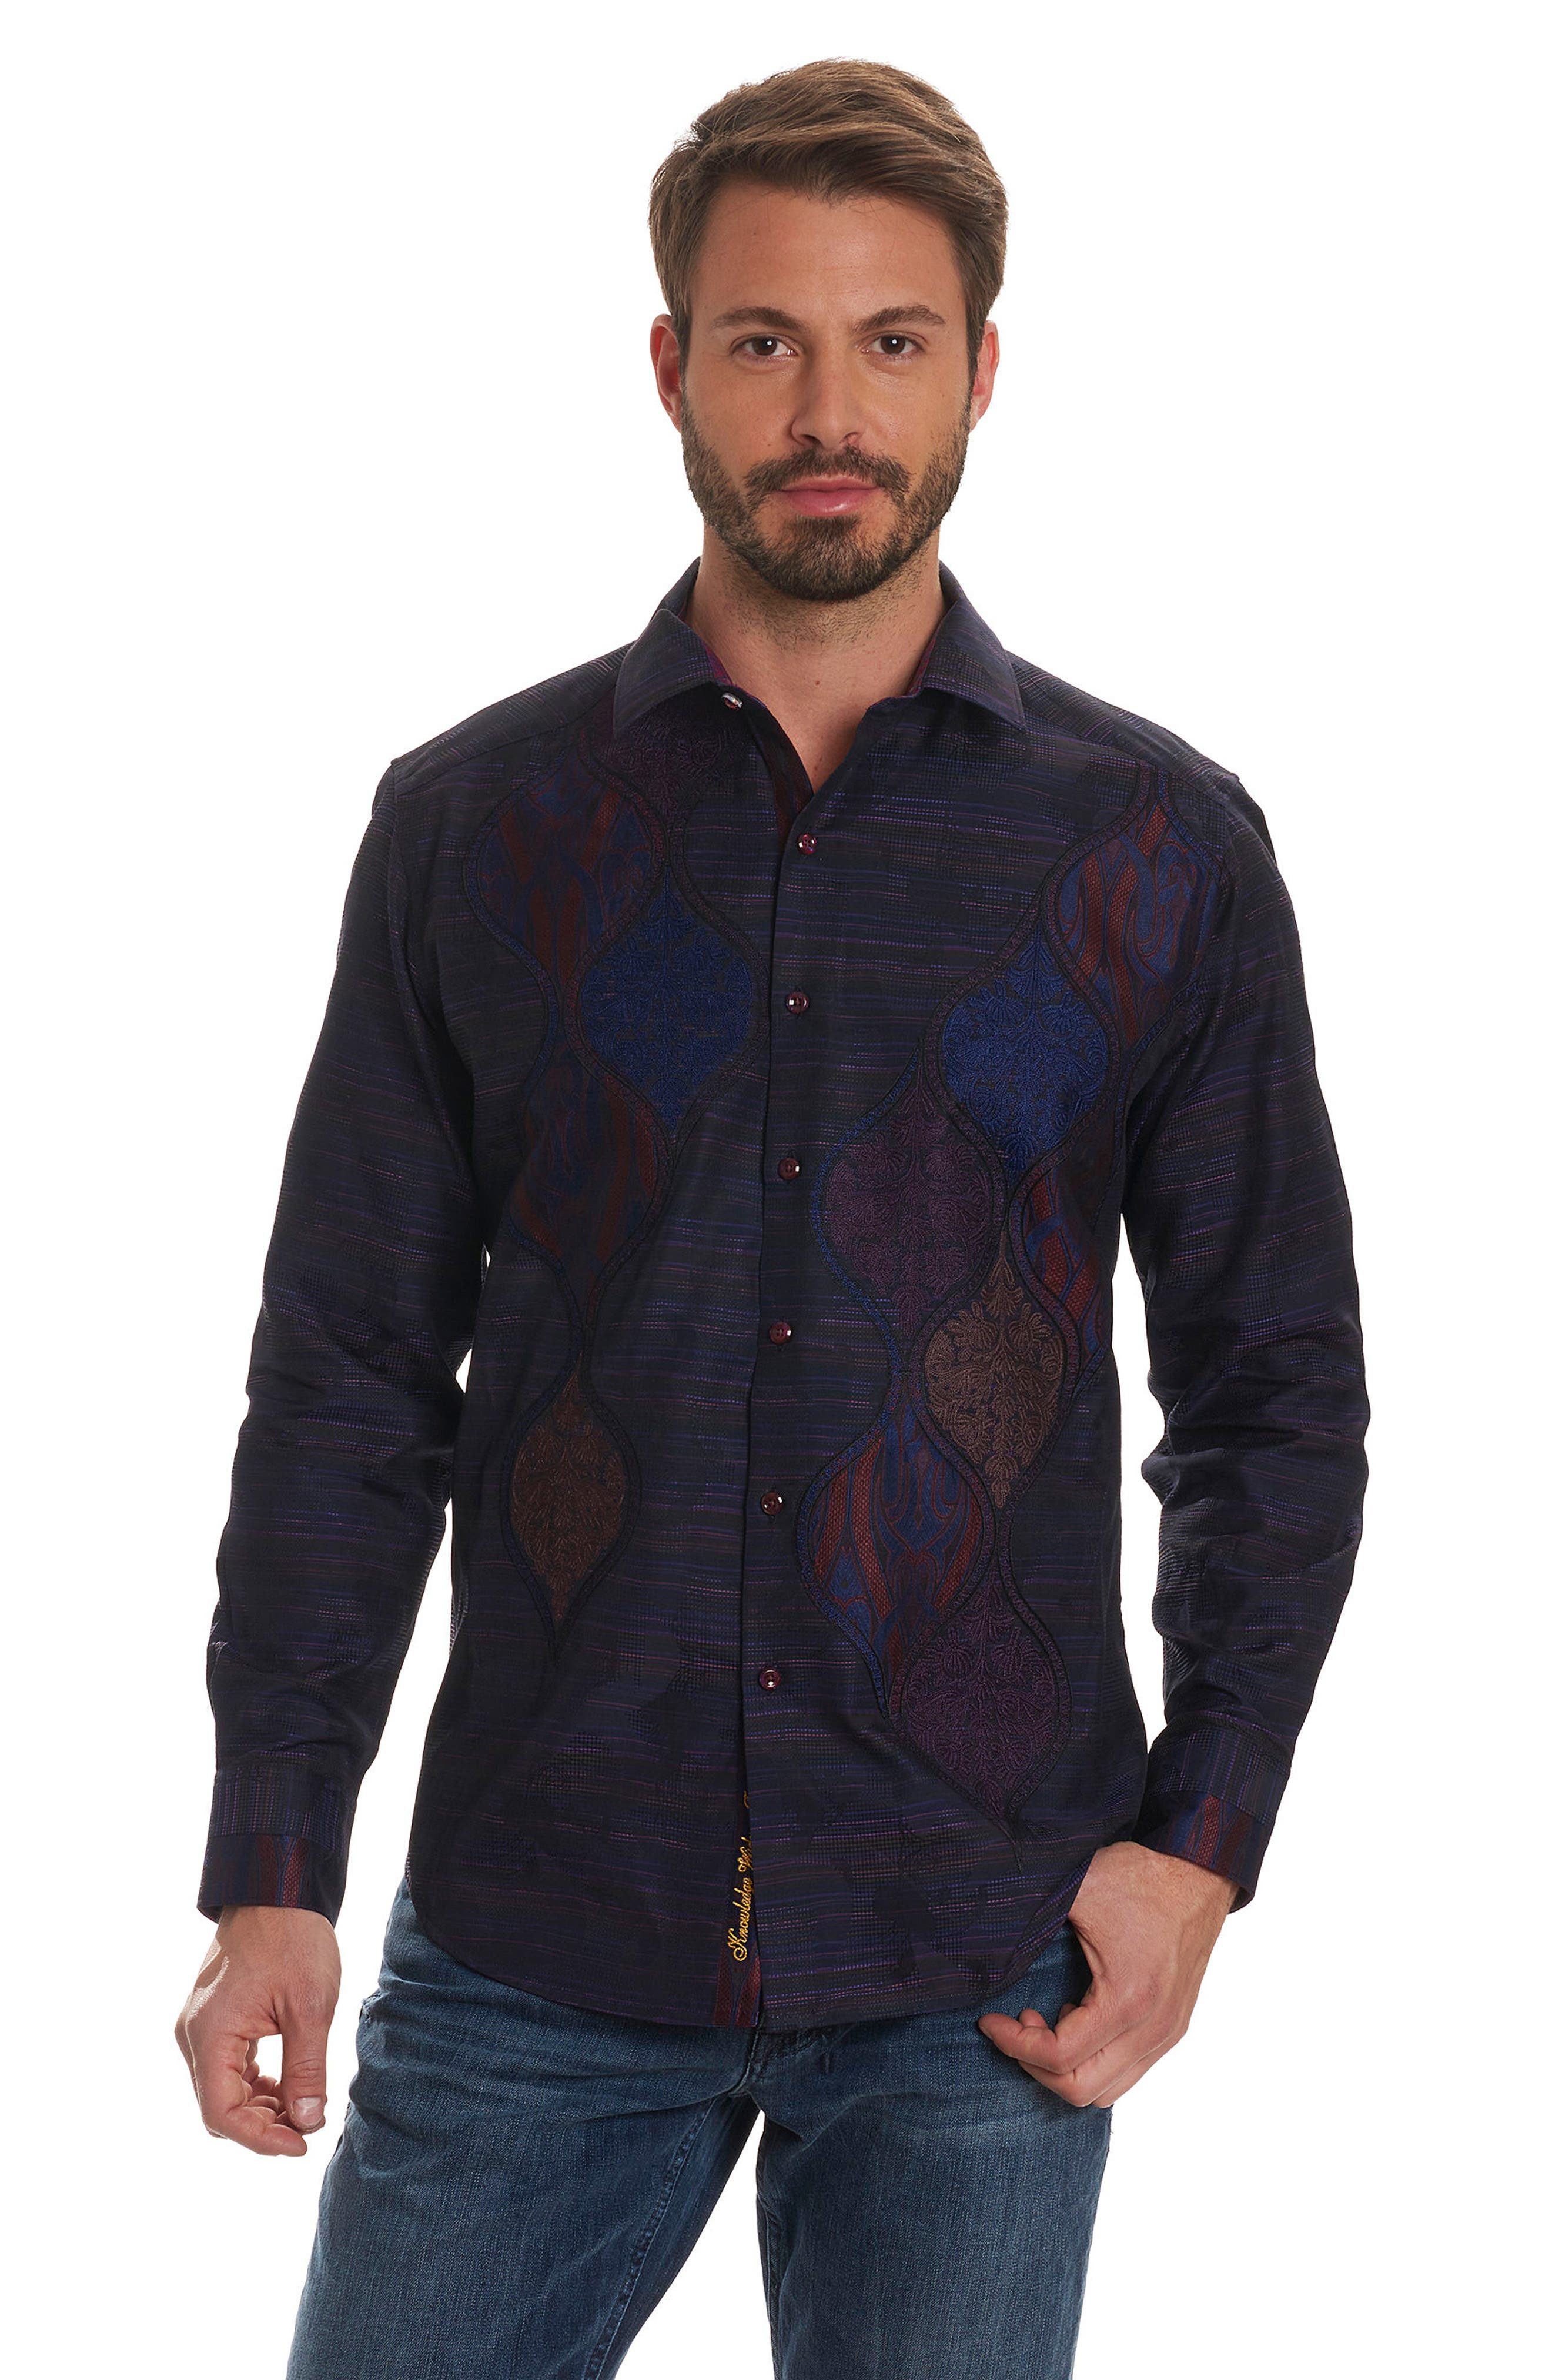 El Rey Classic Fit Embroidered Sport Shirt,                             Alternate thumbnail 8, color,                             Purple